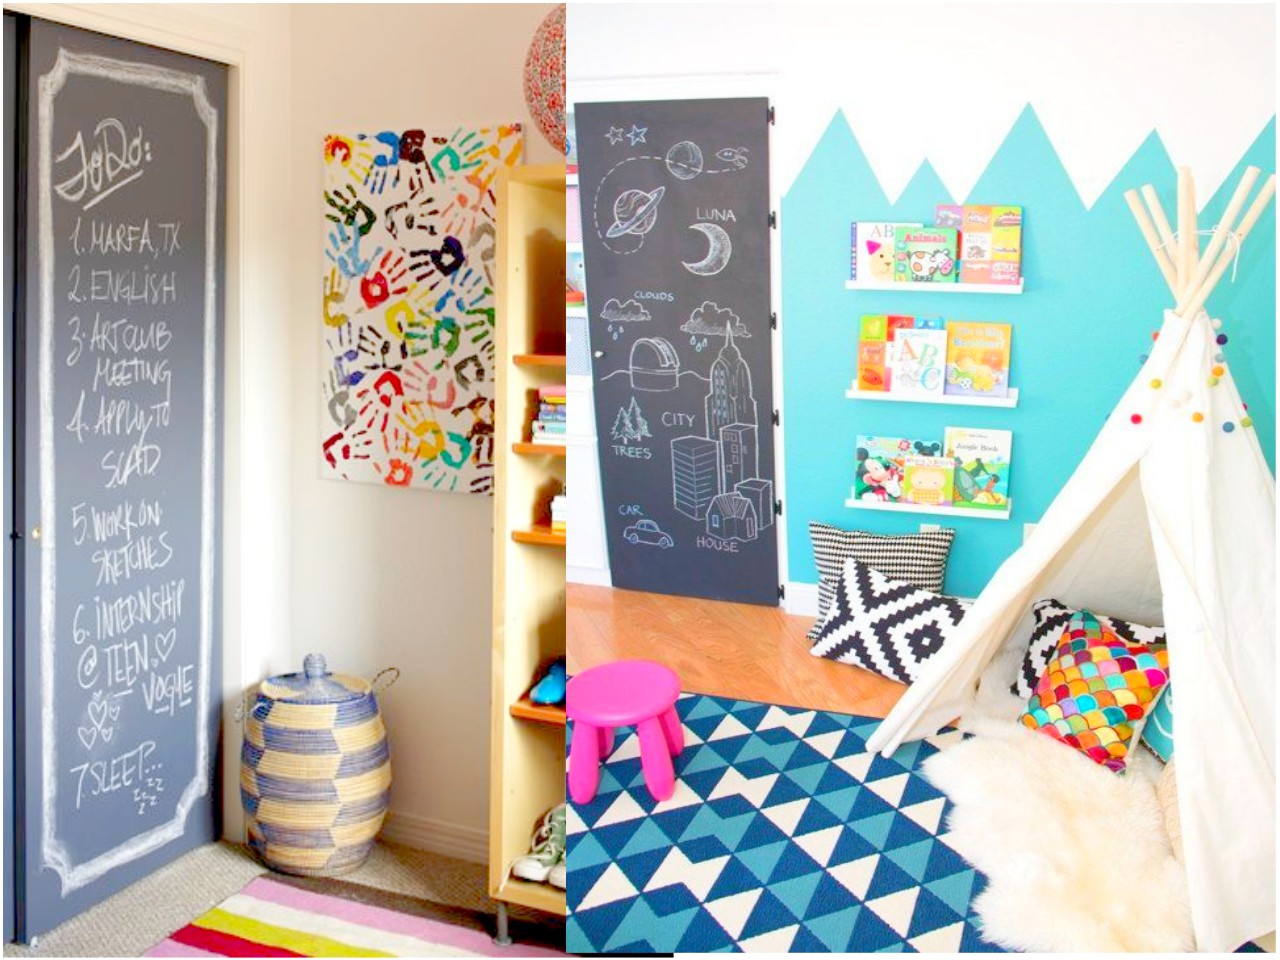 Las 6 mejores ideas de decoraci n con pizarras para casa for Ideas decoracion habitacion infantil nina